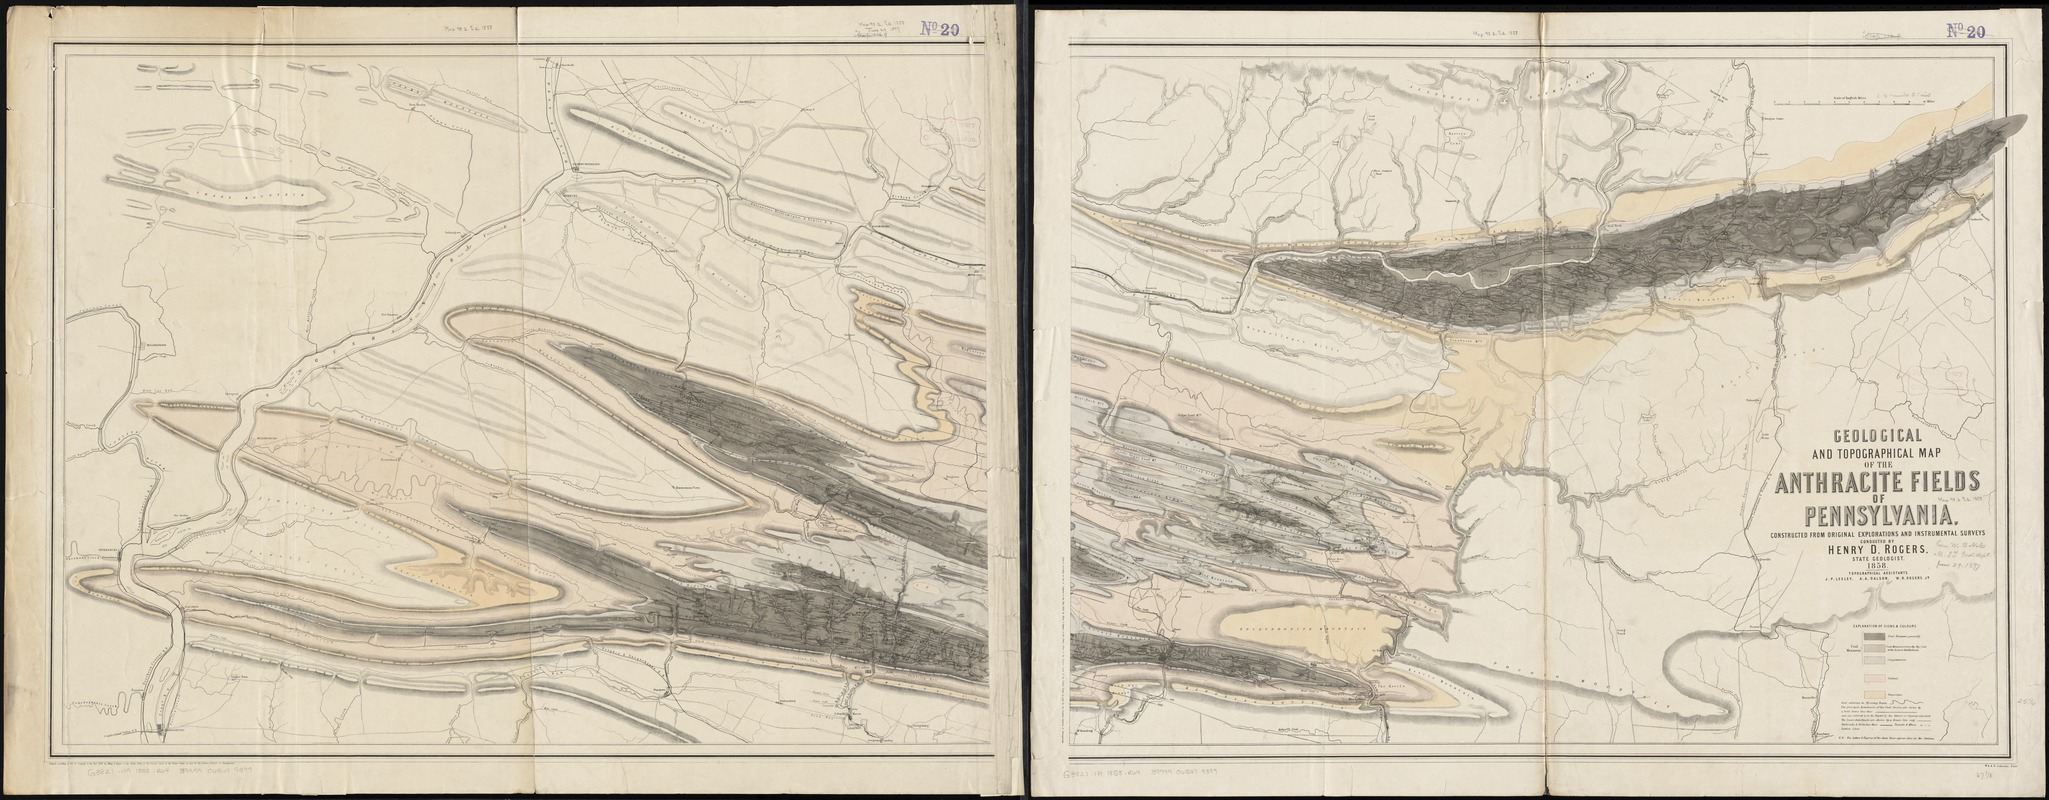 Geological and topographical map of the anthracite fields of Pennsylvania